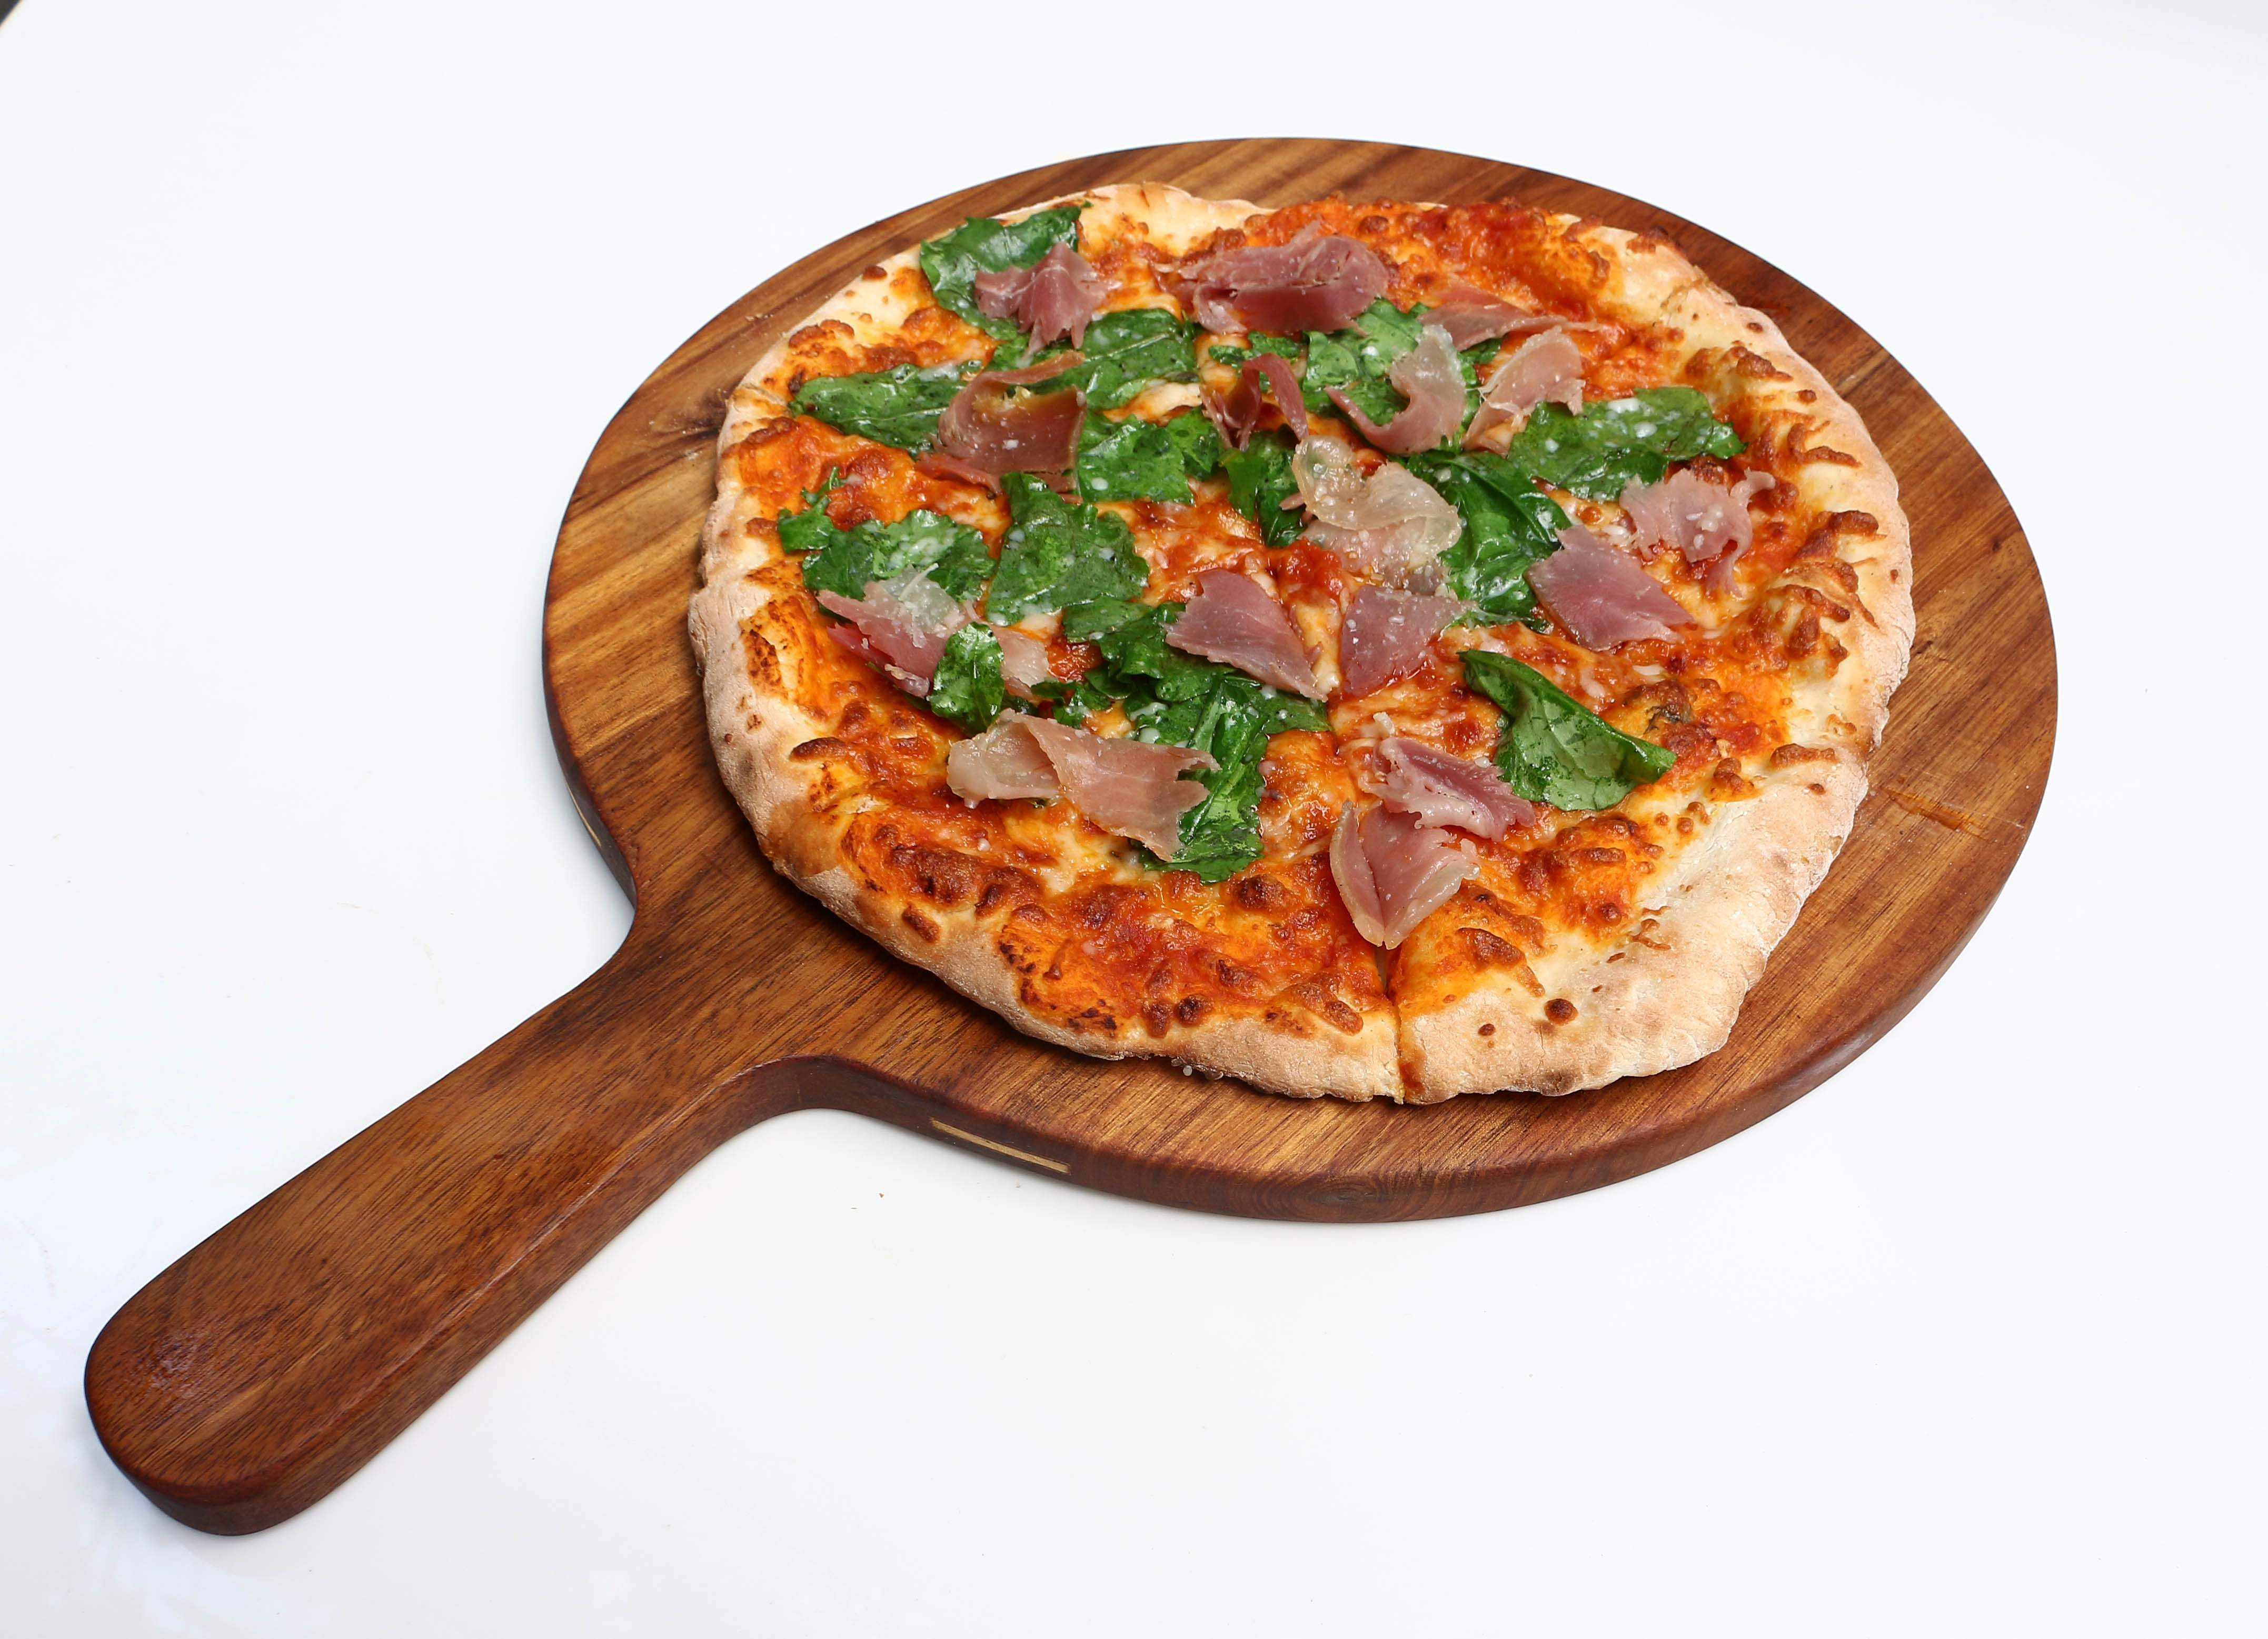 Proscuitto and Rucola pizza